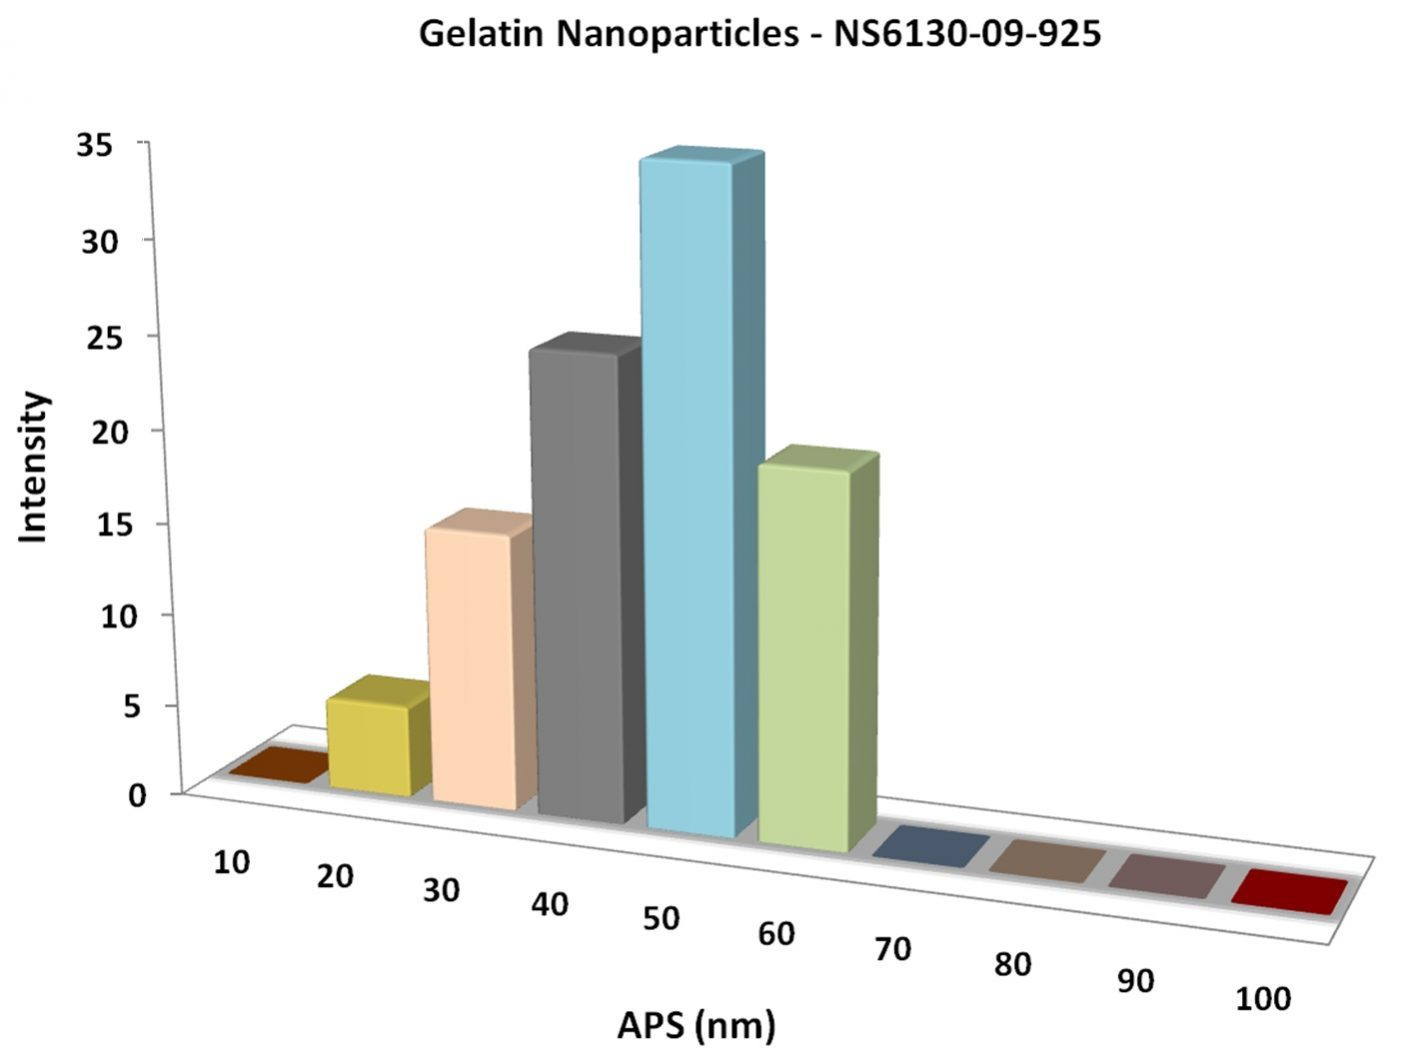 Particles Size Analysis - Gelatin Nanoparticles